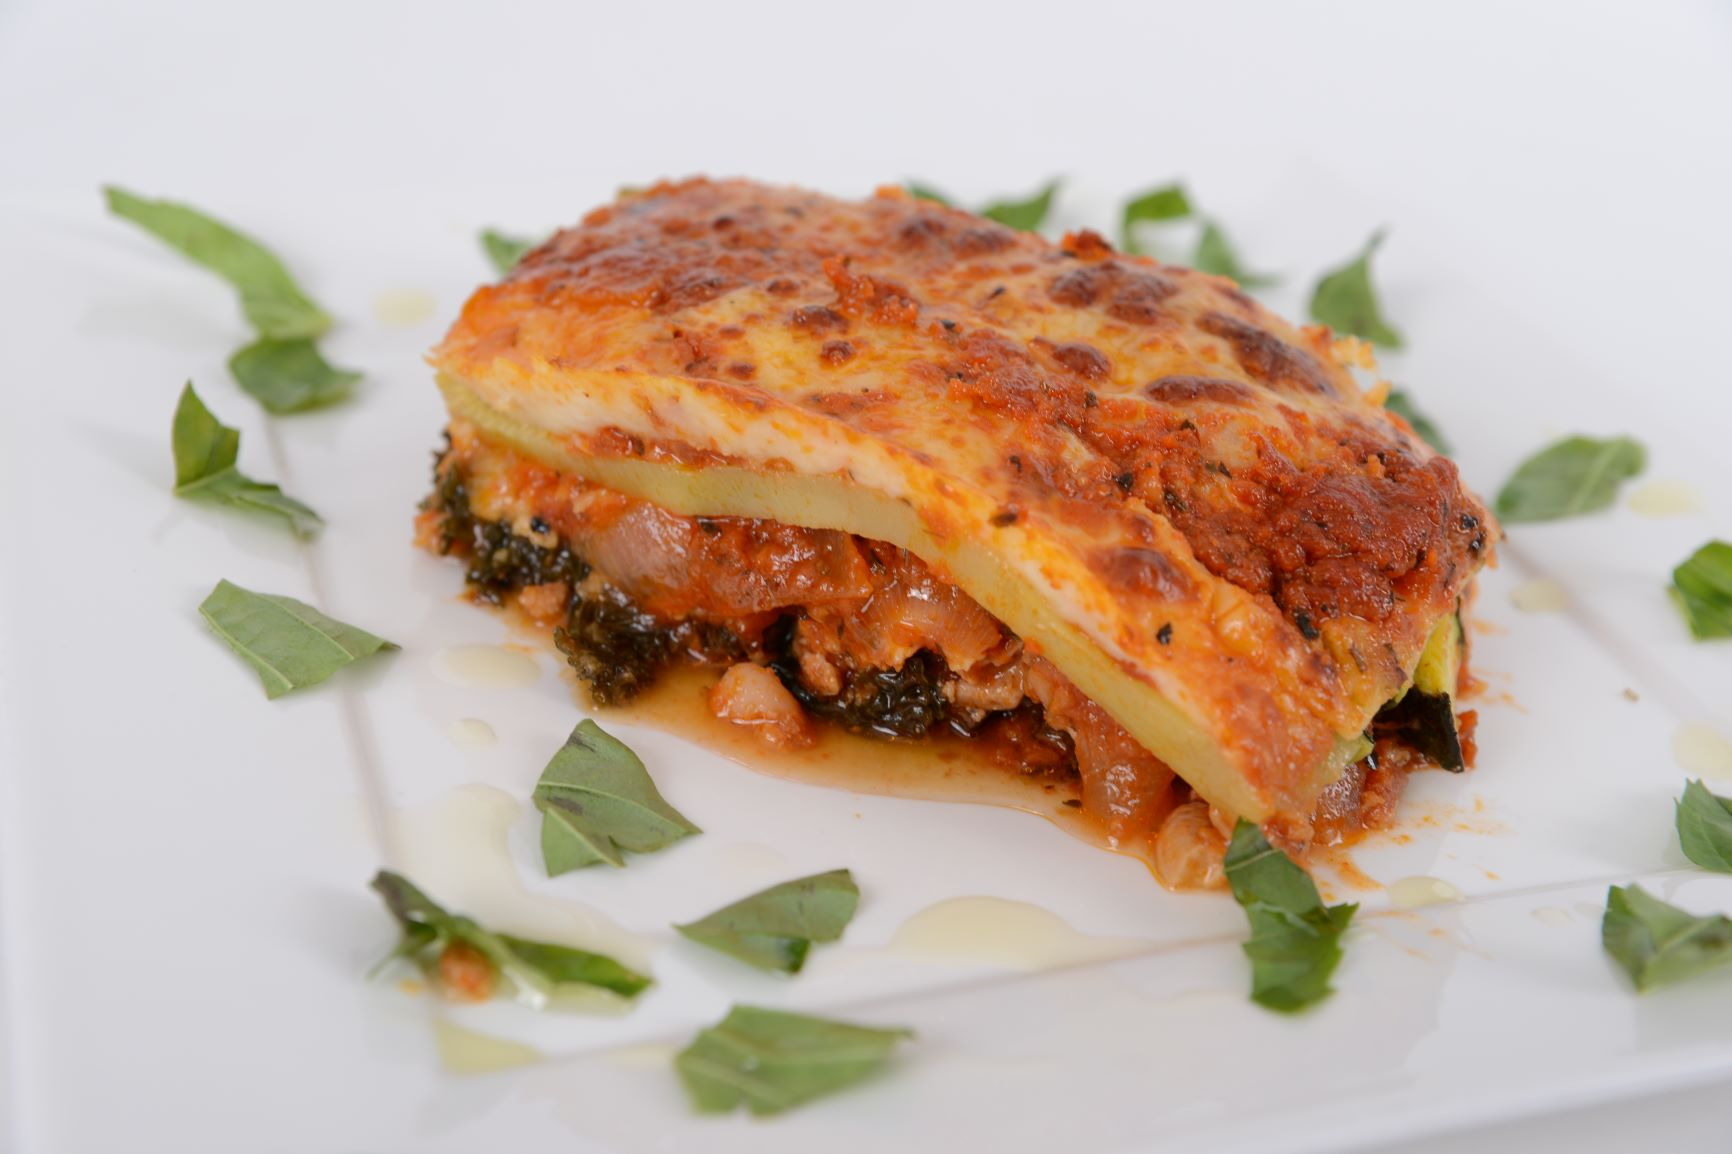 Turkey Moussaka w/ Zucchini & Eggplant (Monday 7/20 Delivery)